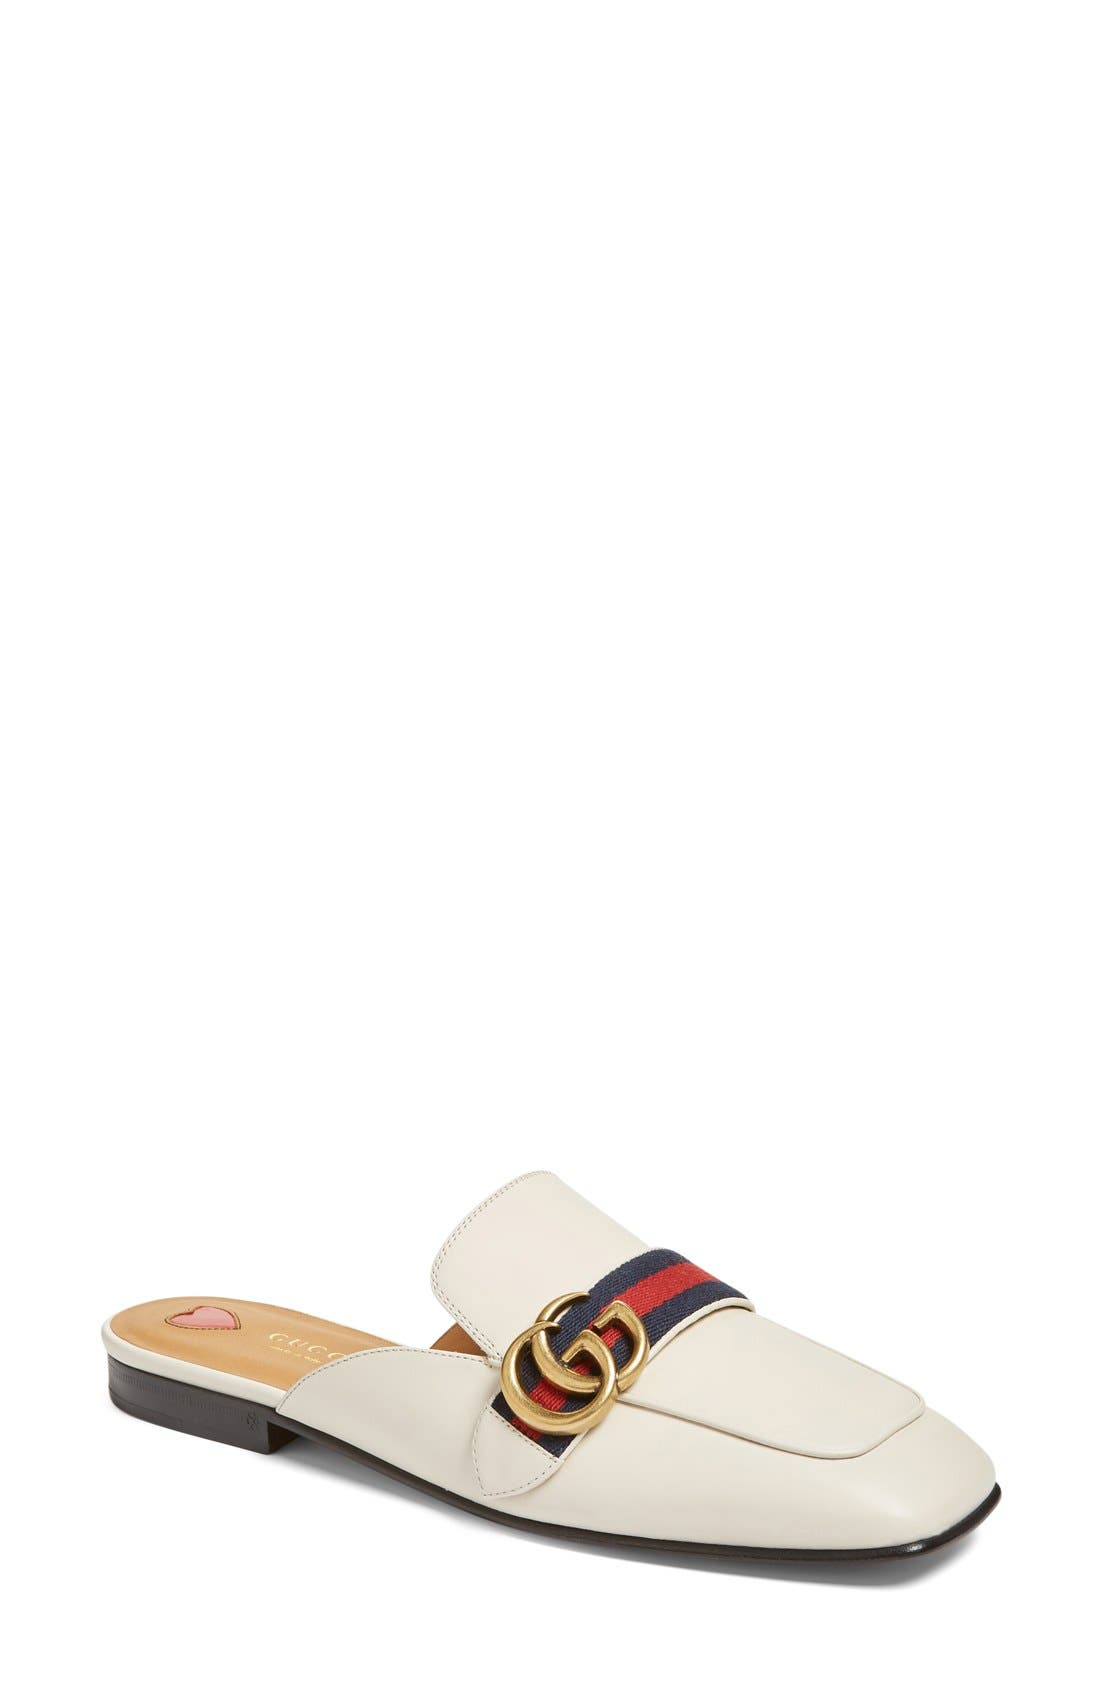 Gucci Peyton Loafer Mule (Women)